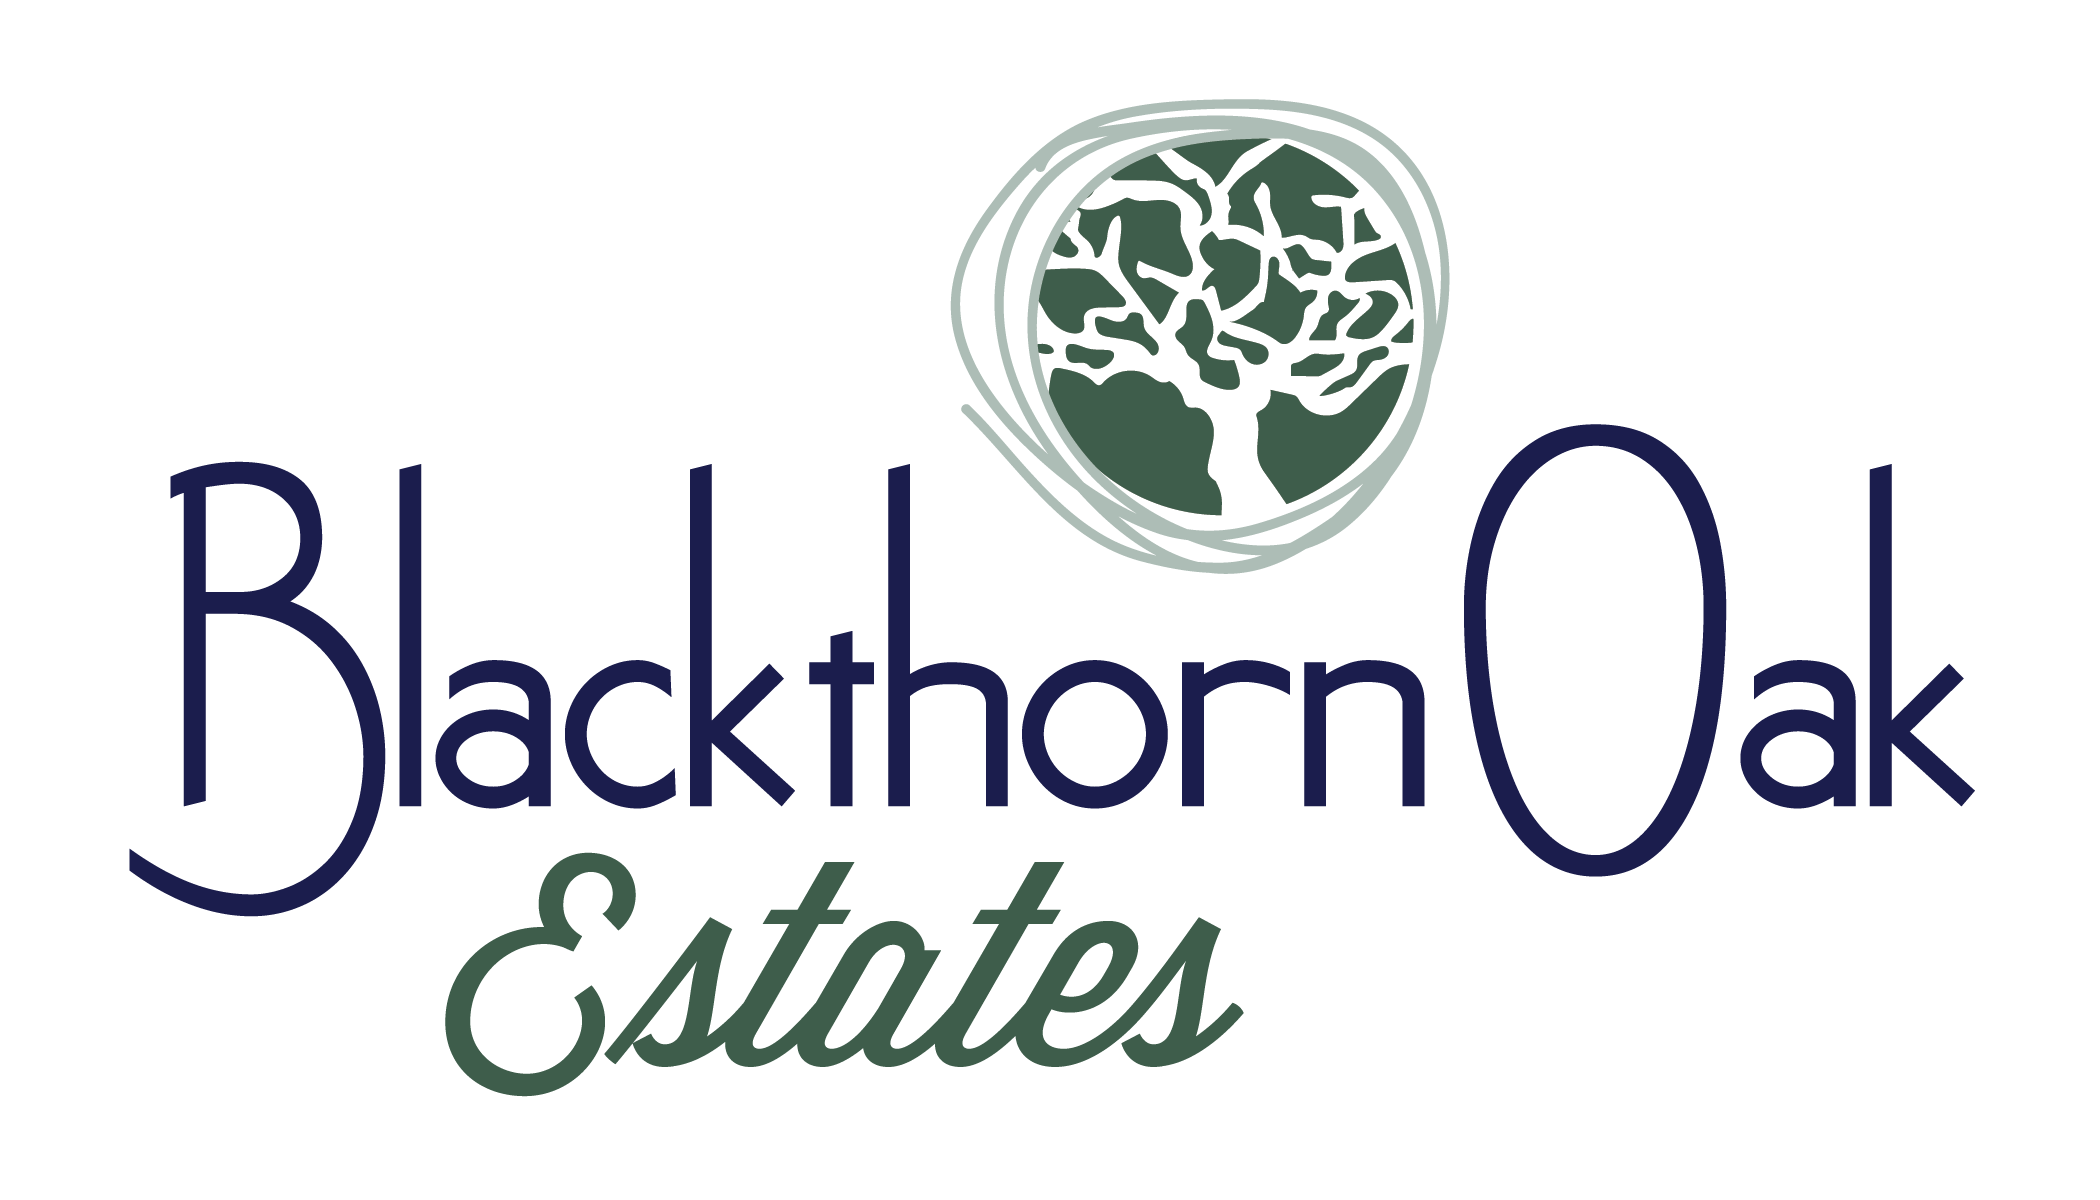 Blackthorn Oak Estates